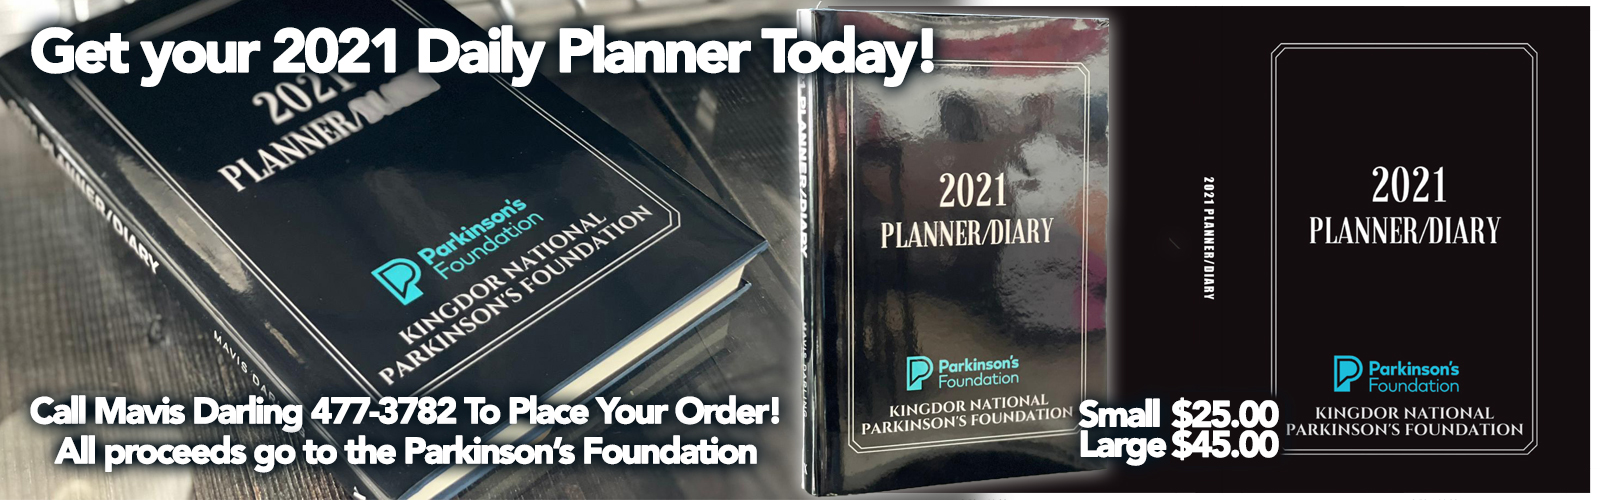 Get Your 2021 Daily Planner Today!